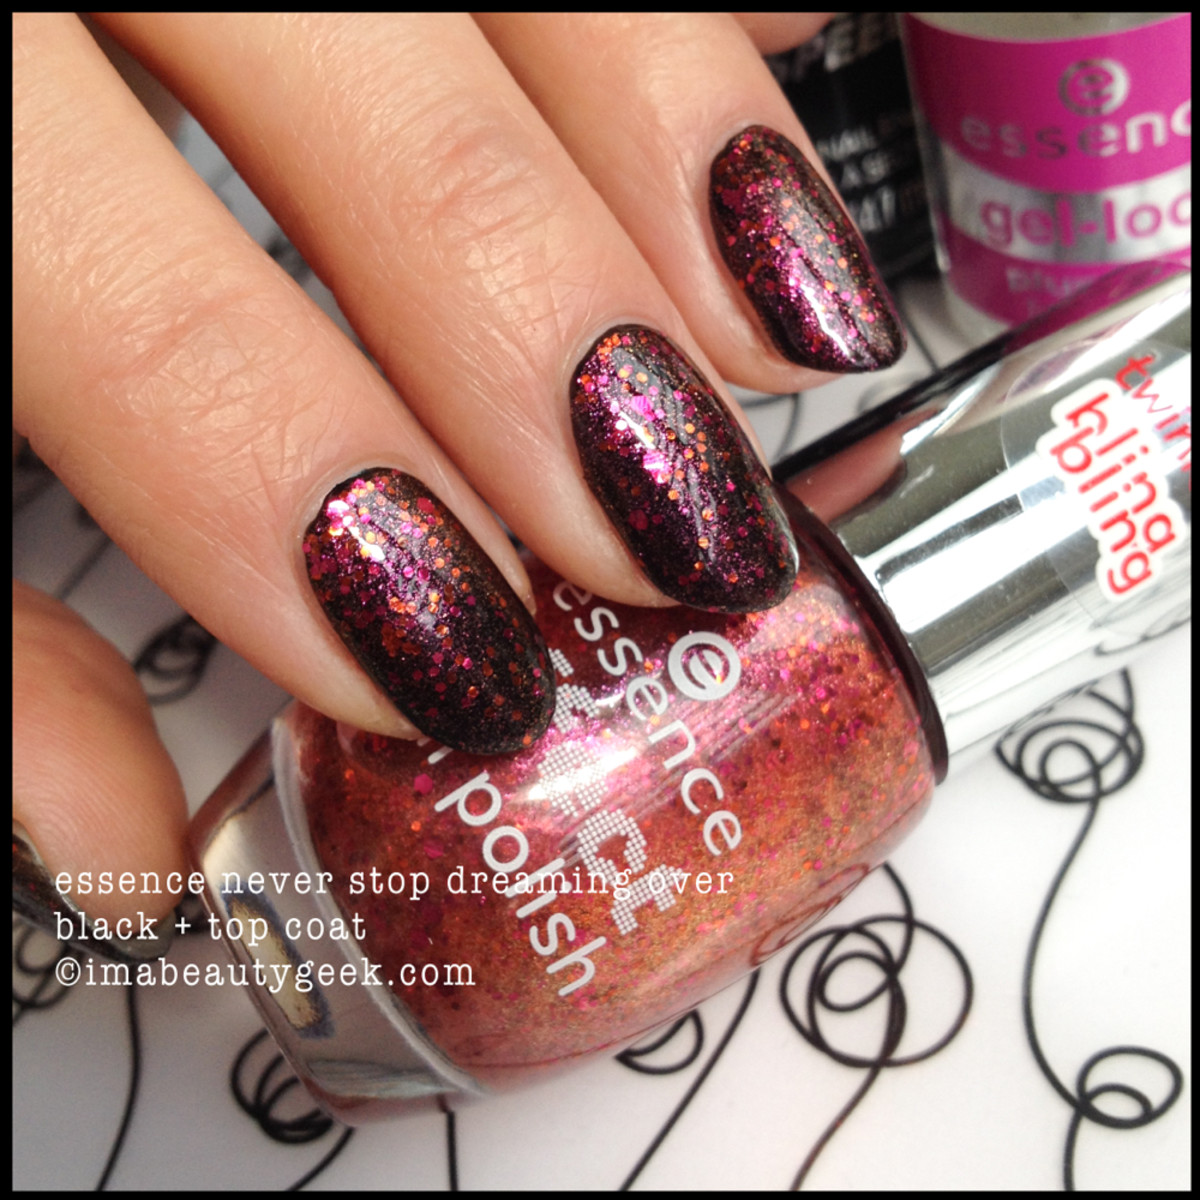 essence never stop dreaming nail polish black undies topcoated